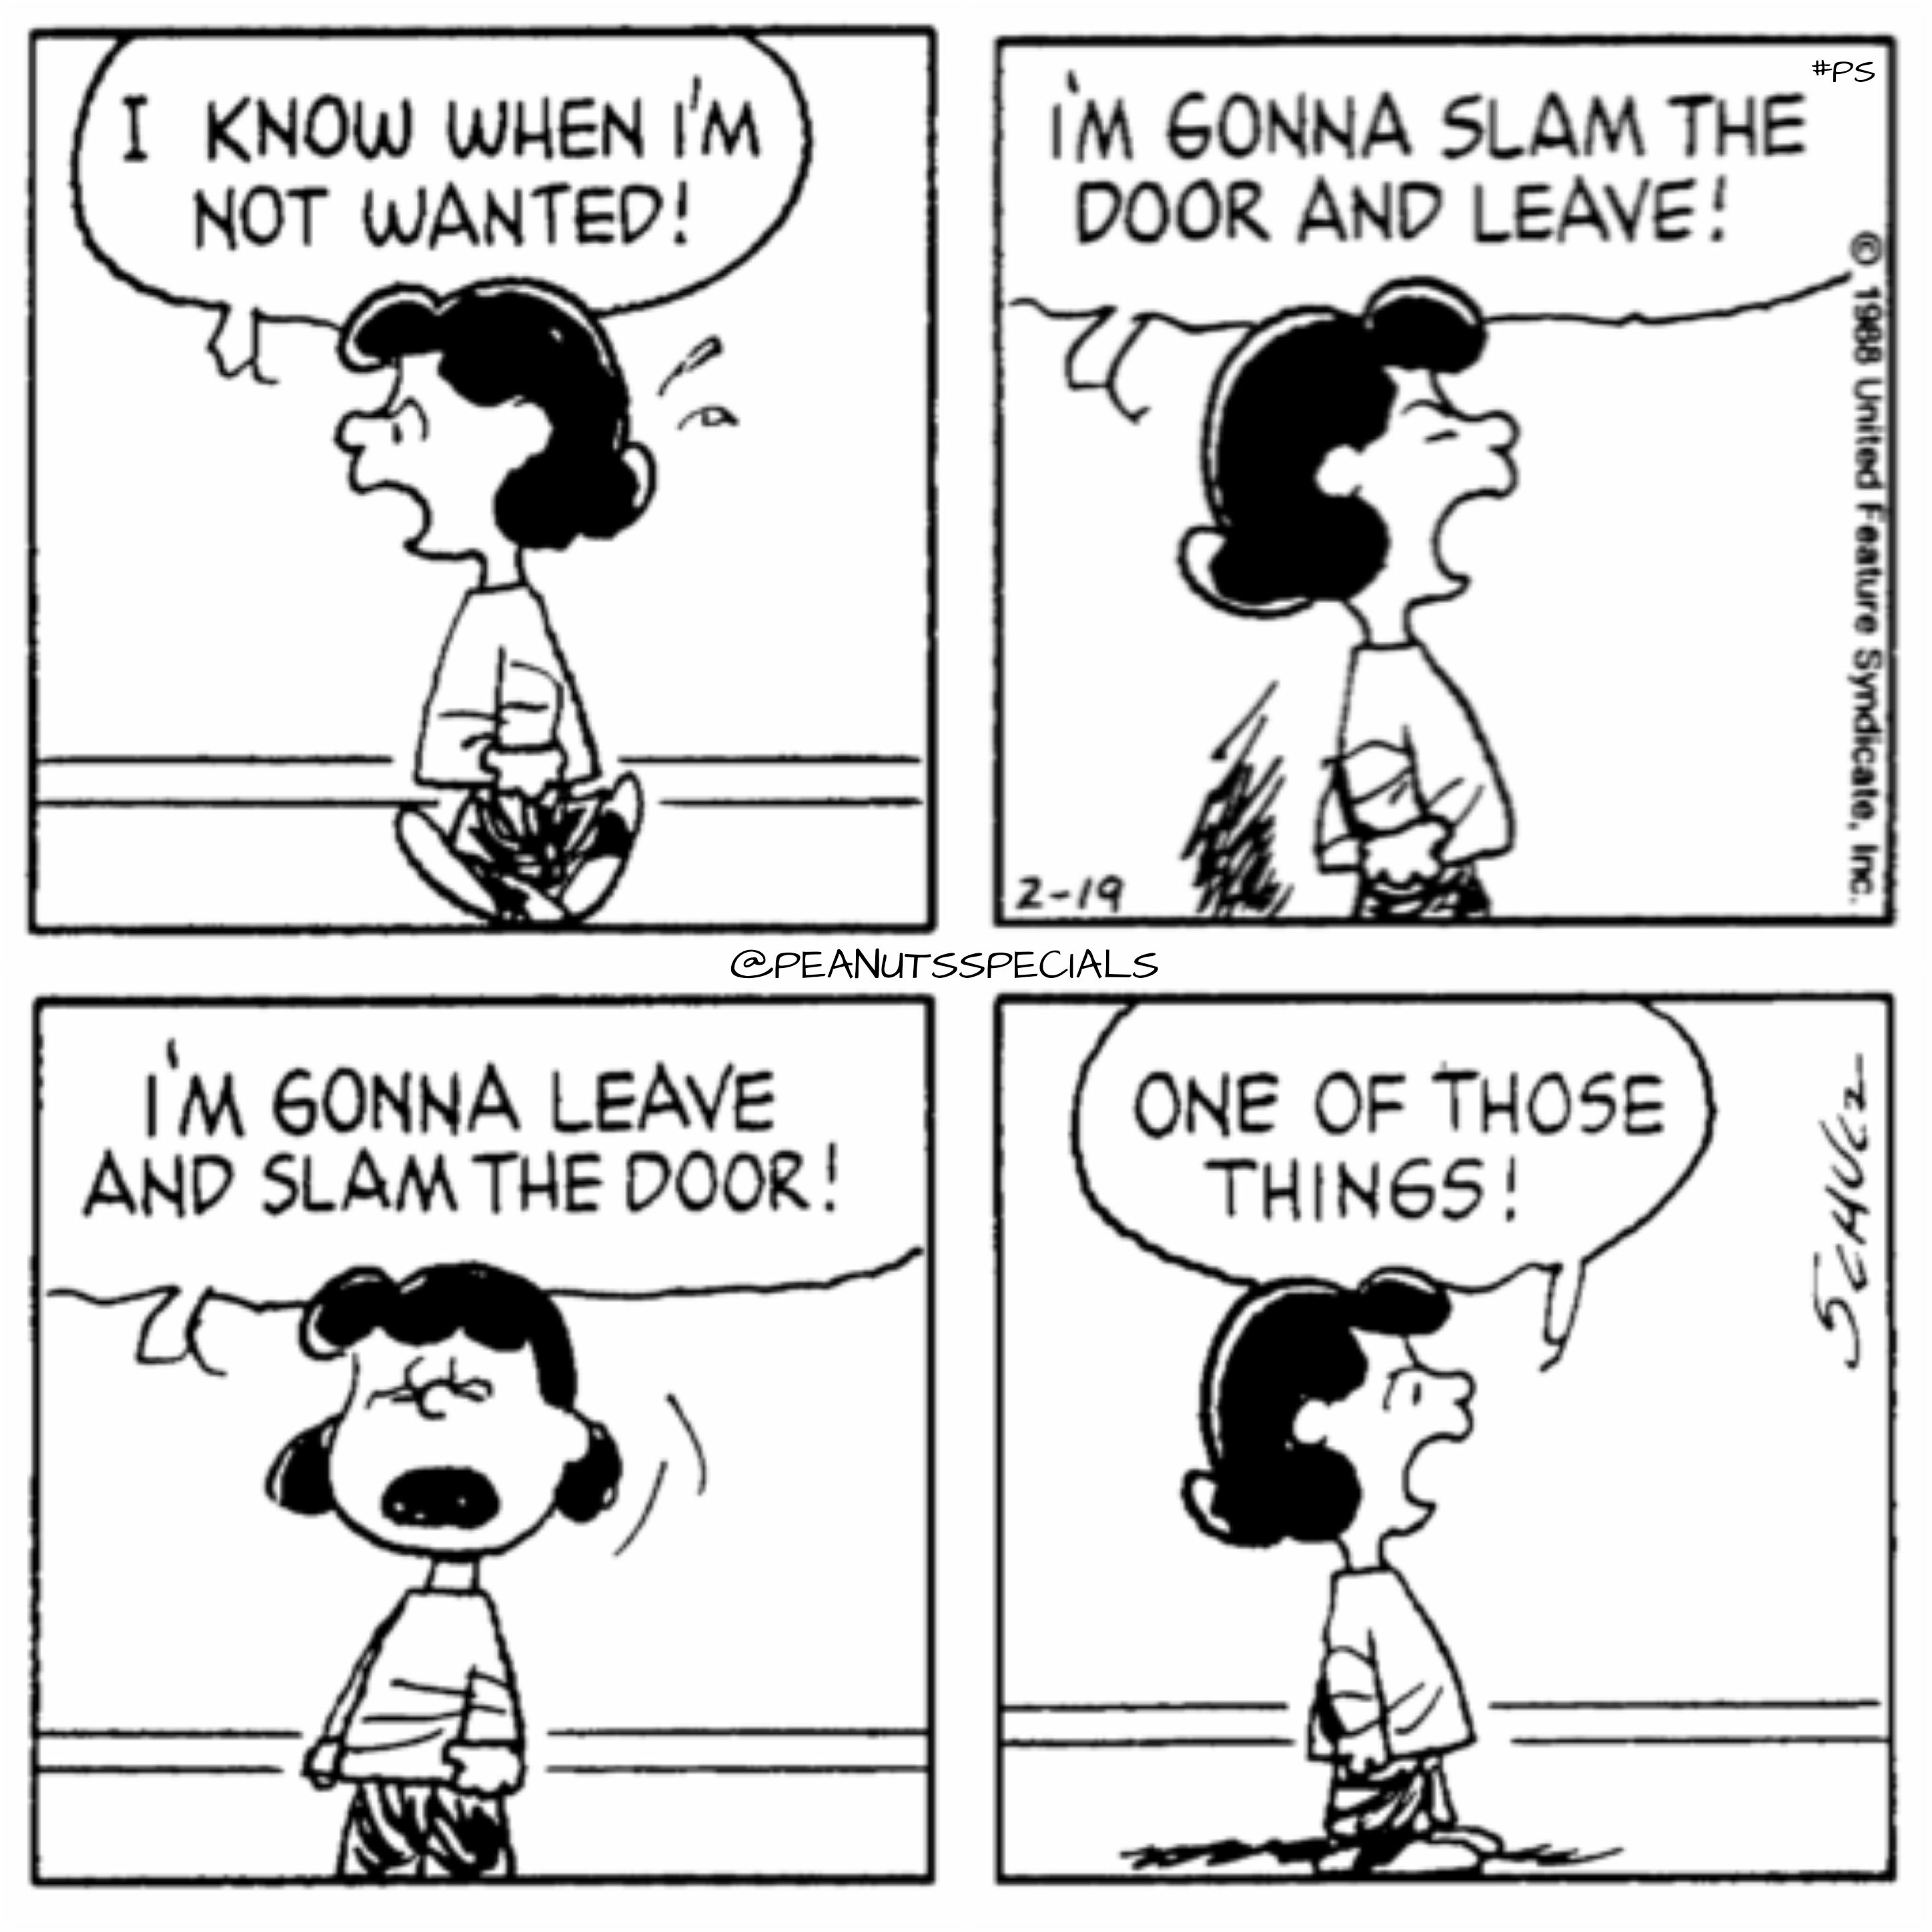 First Appearance February 19th 1988 #peanutsspecials #ps #pnts #schulz #  sc 1 st  Pinterest & First Appearance: February 19th 1988 #peanutsspecials #ps #pnts ...